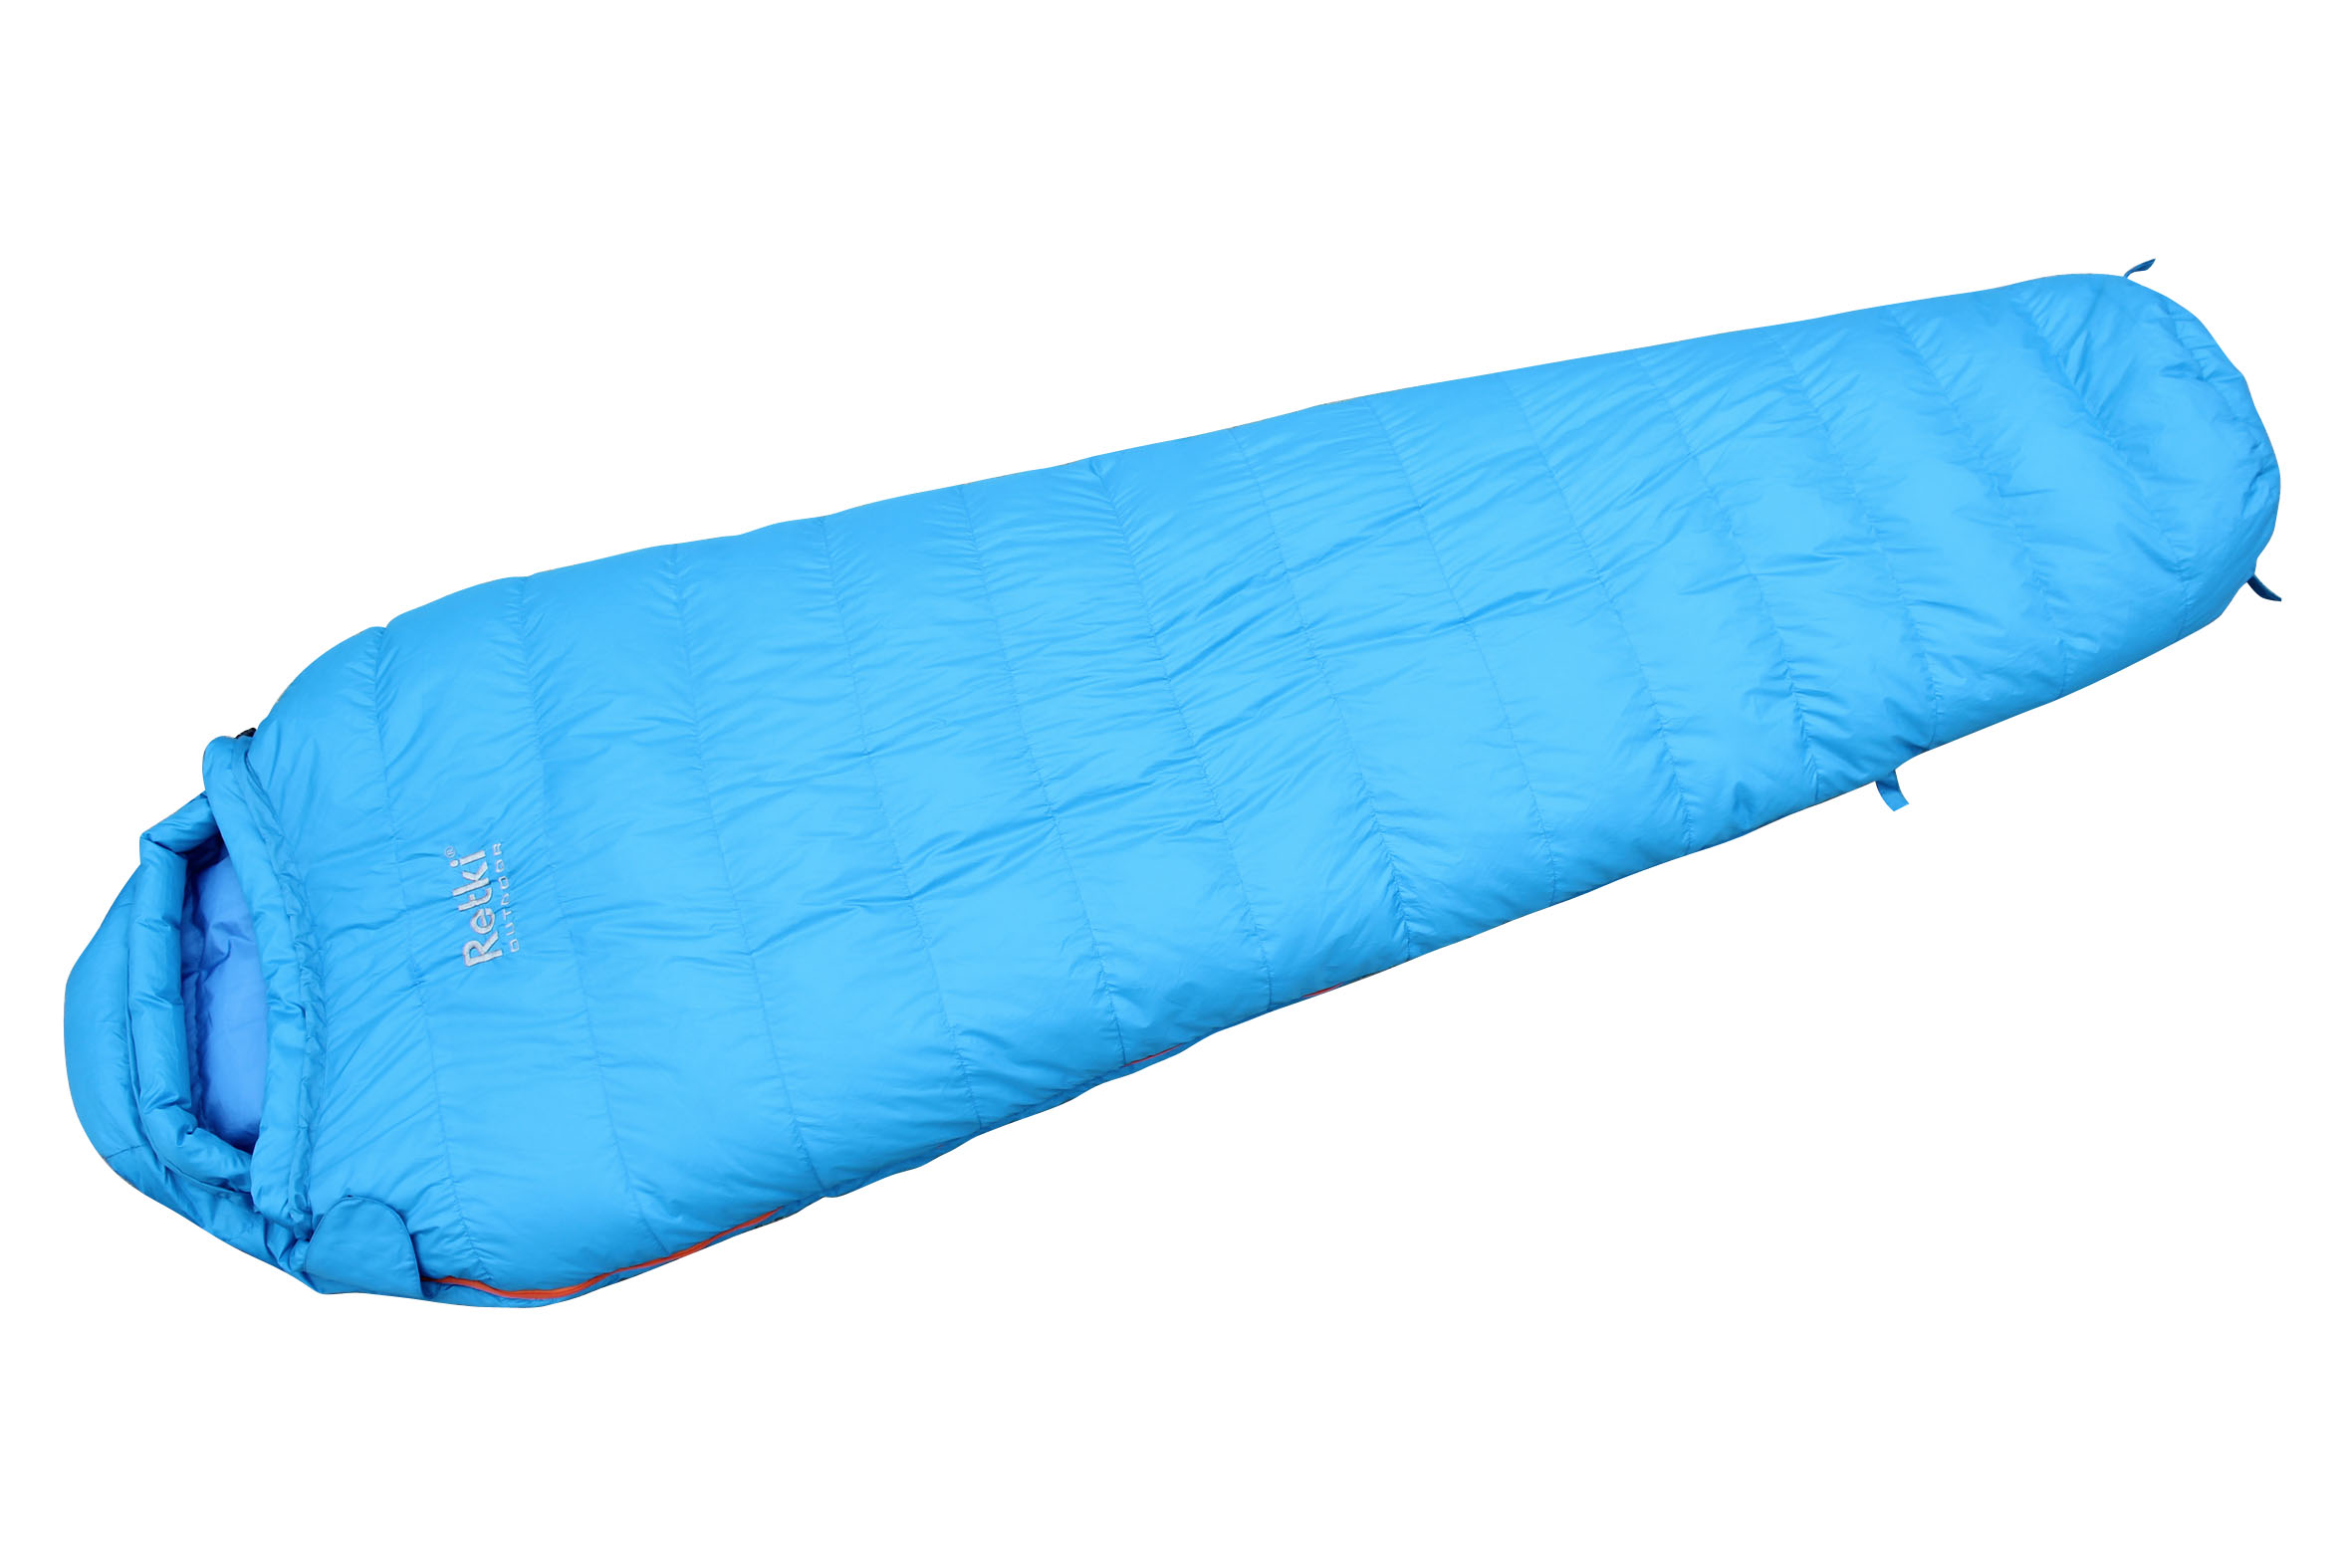 Retki Pallas down sleeping bag